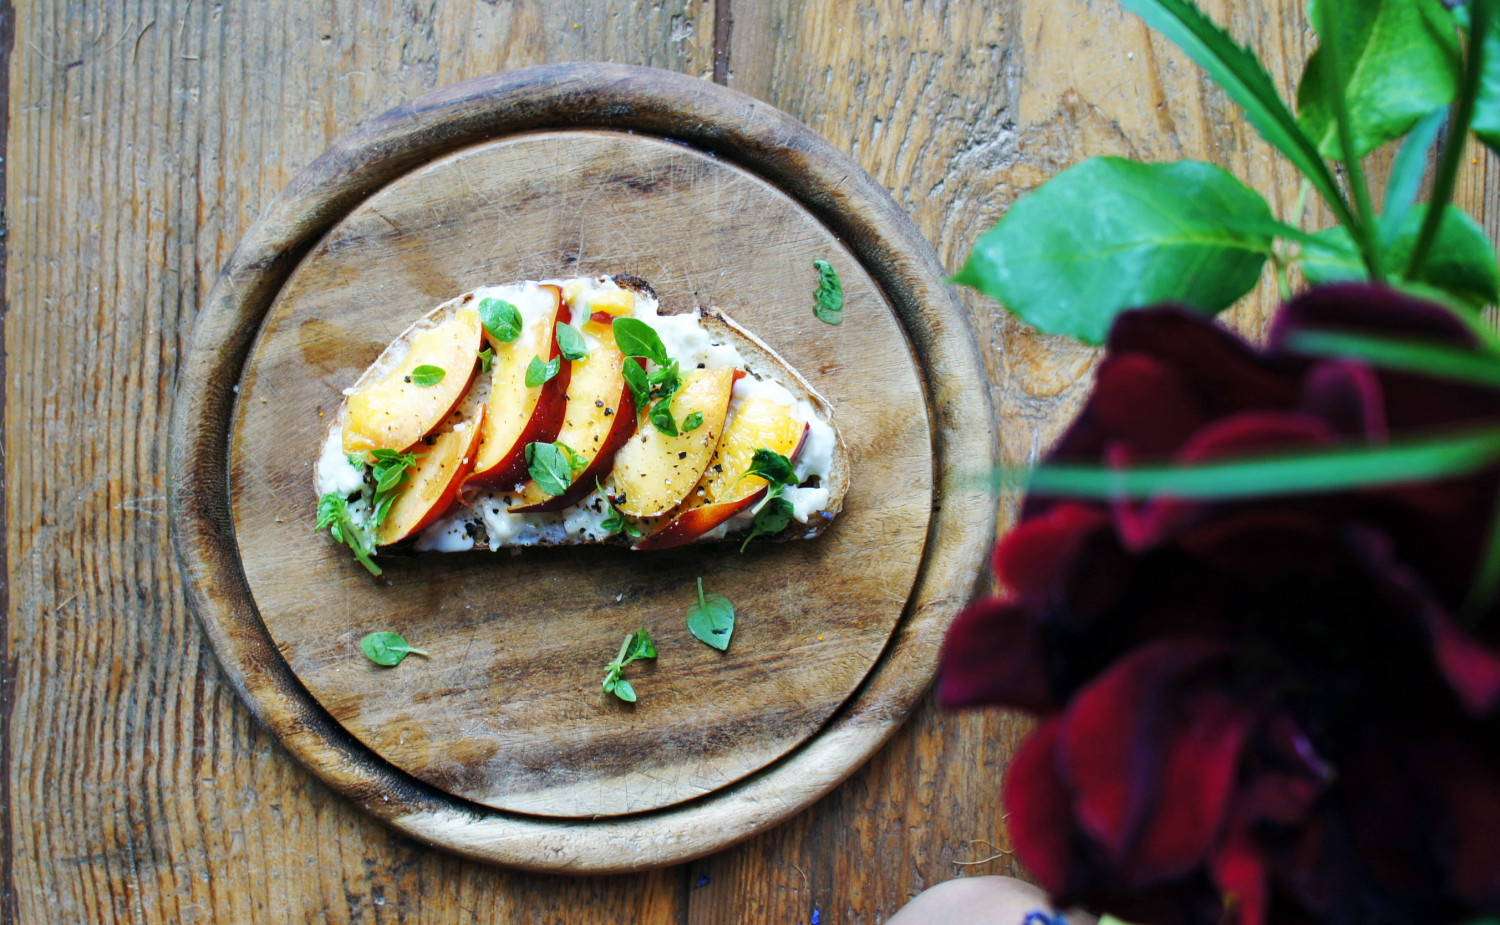 Nectarine and Goats Cheese Tartine with Basil